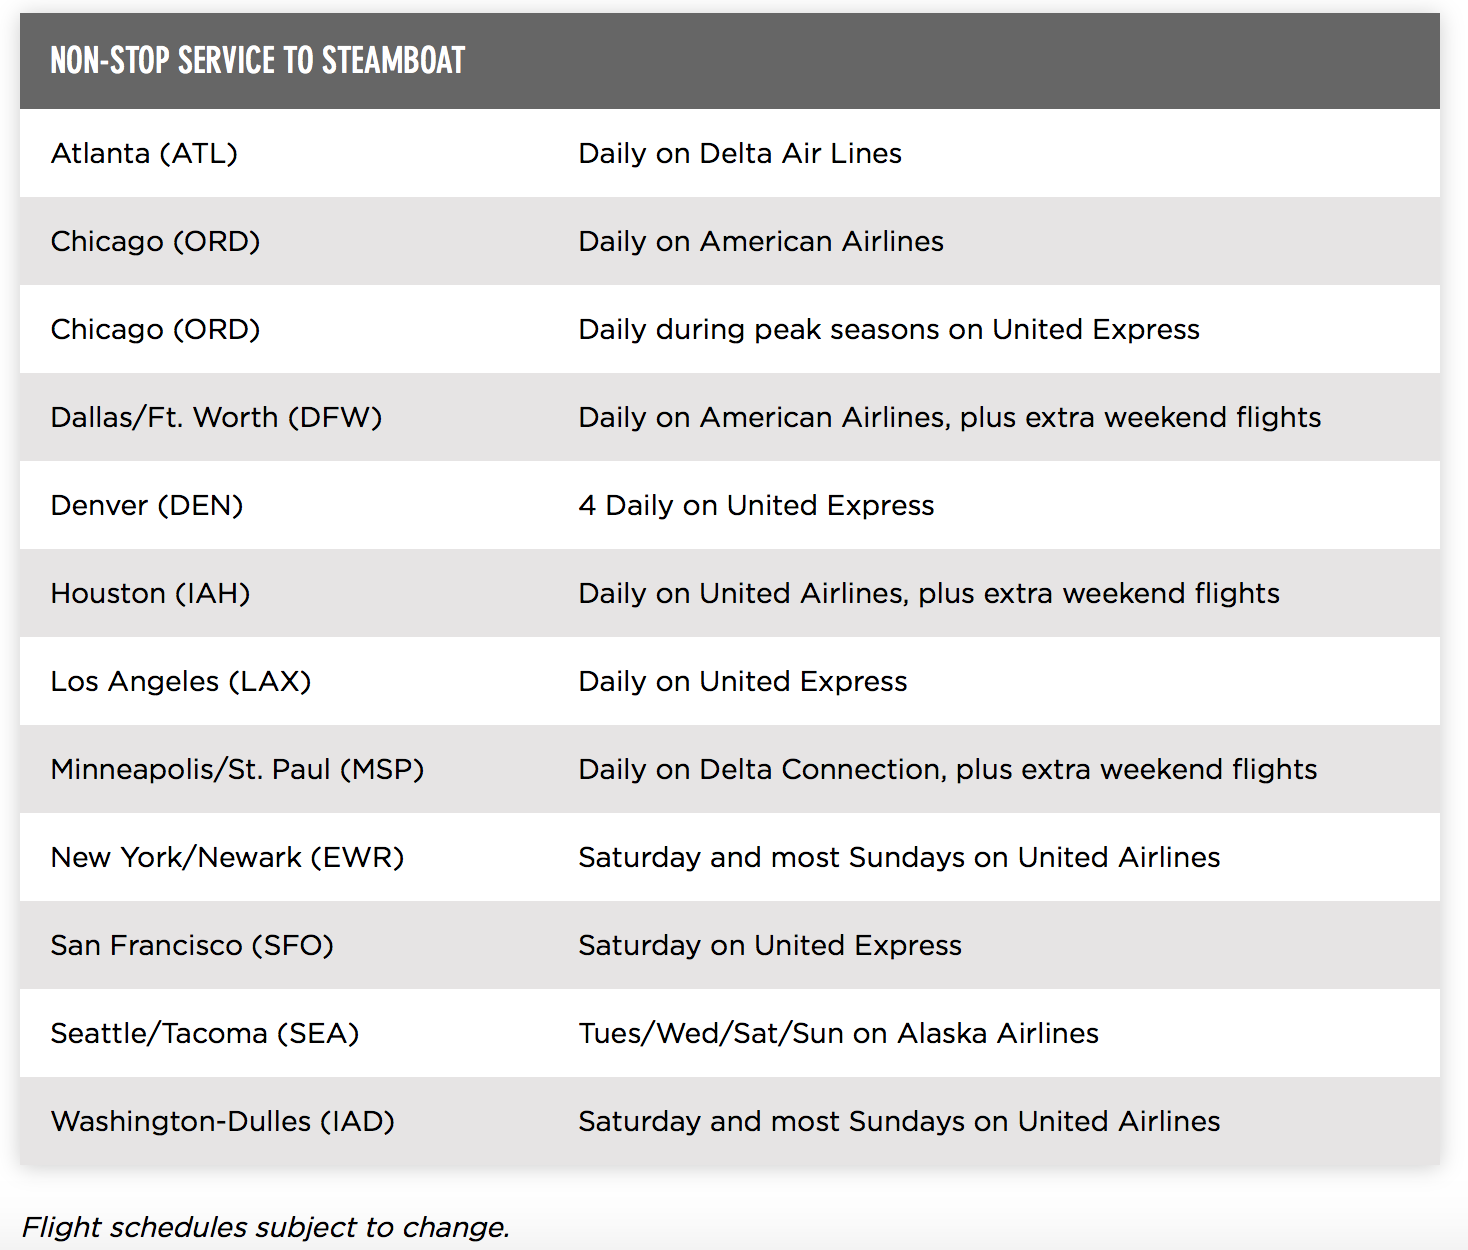 winter 2015/16 flight schedule for steamboat springs (hdn) - charlie